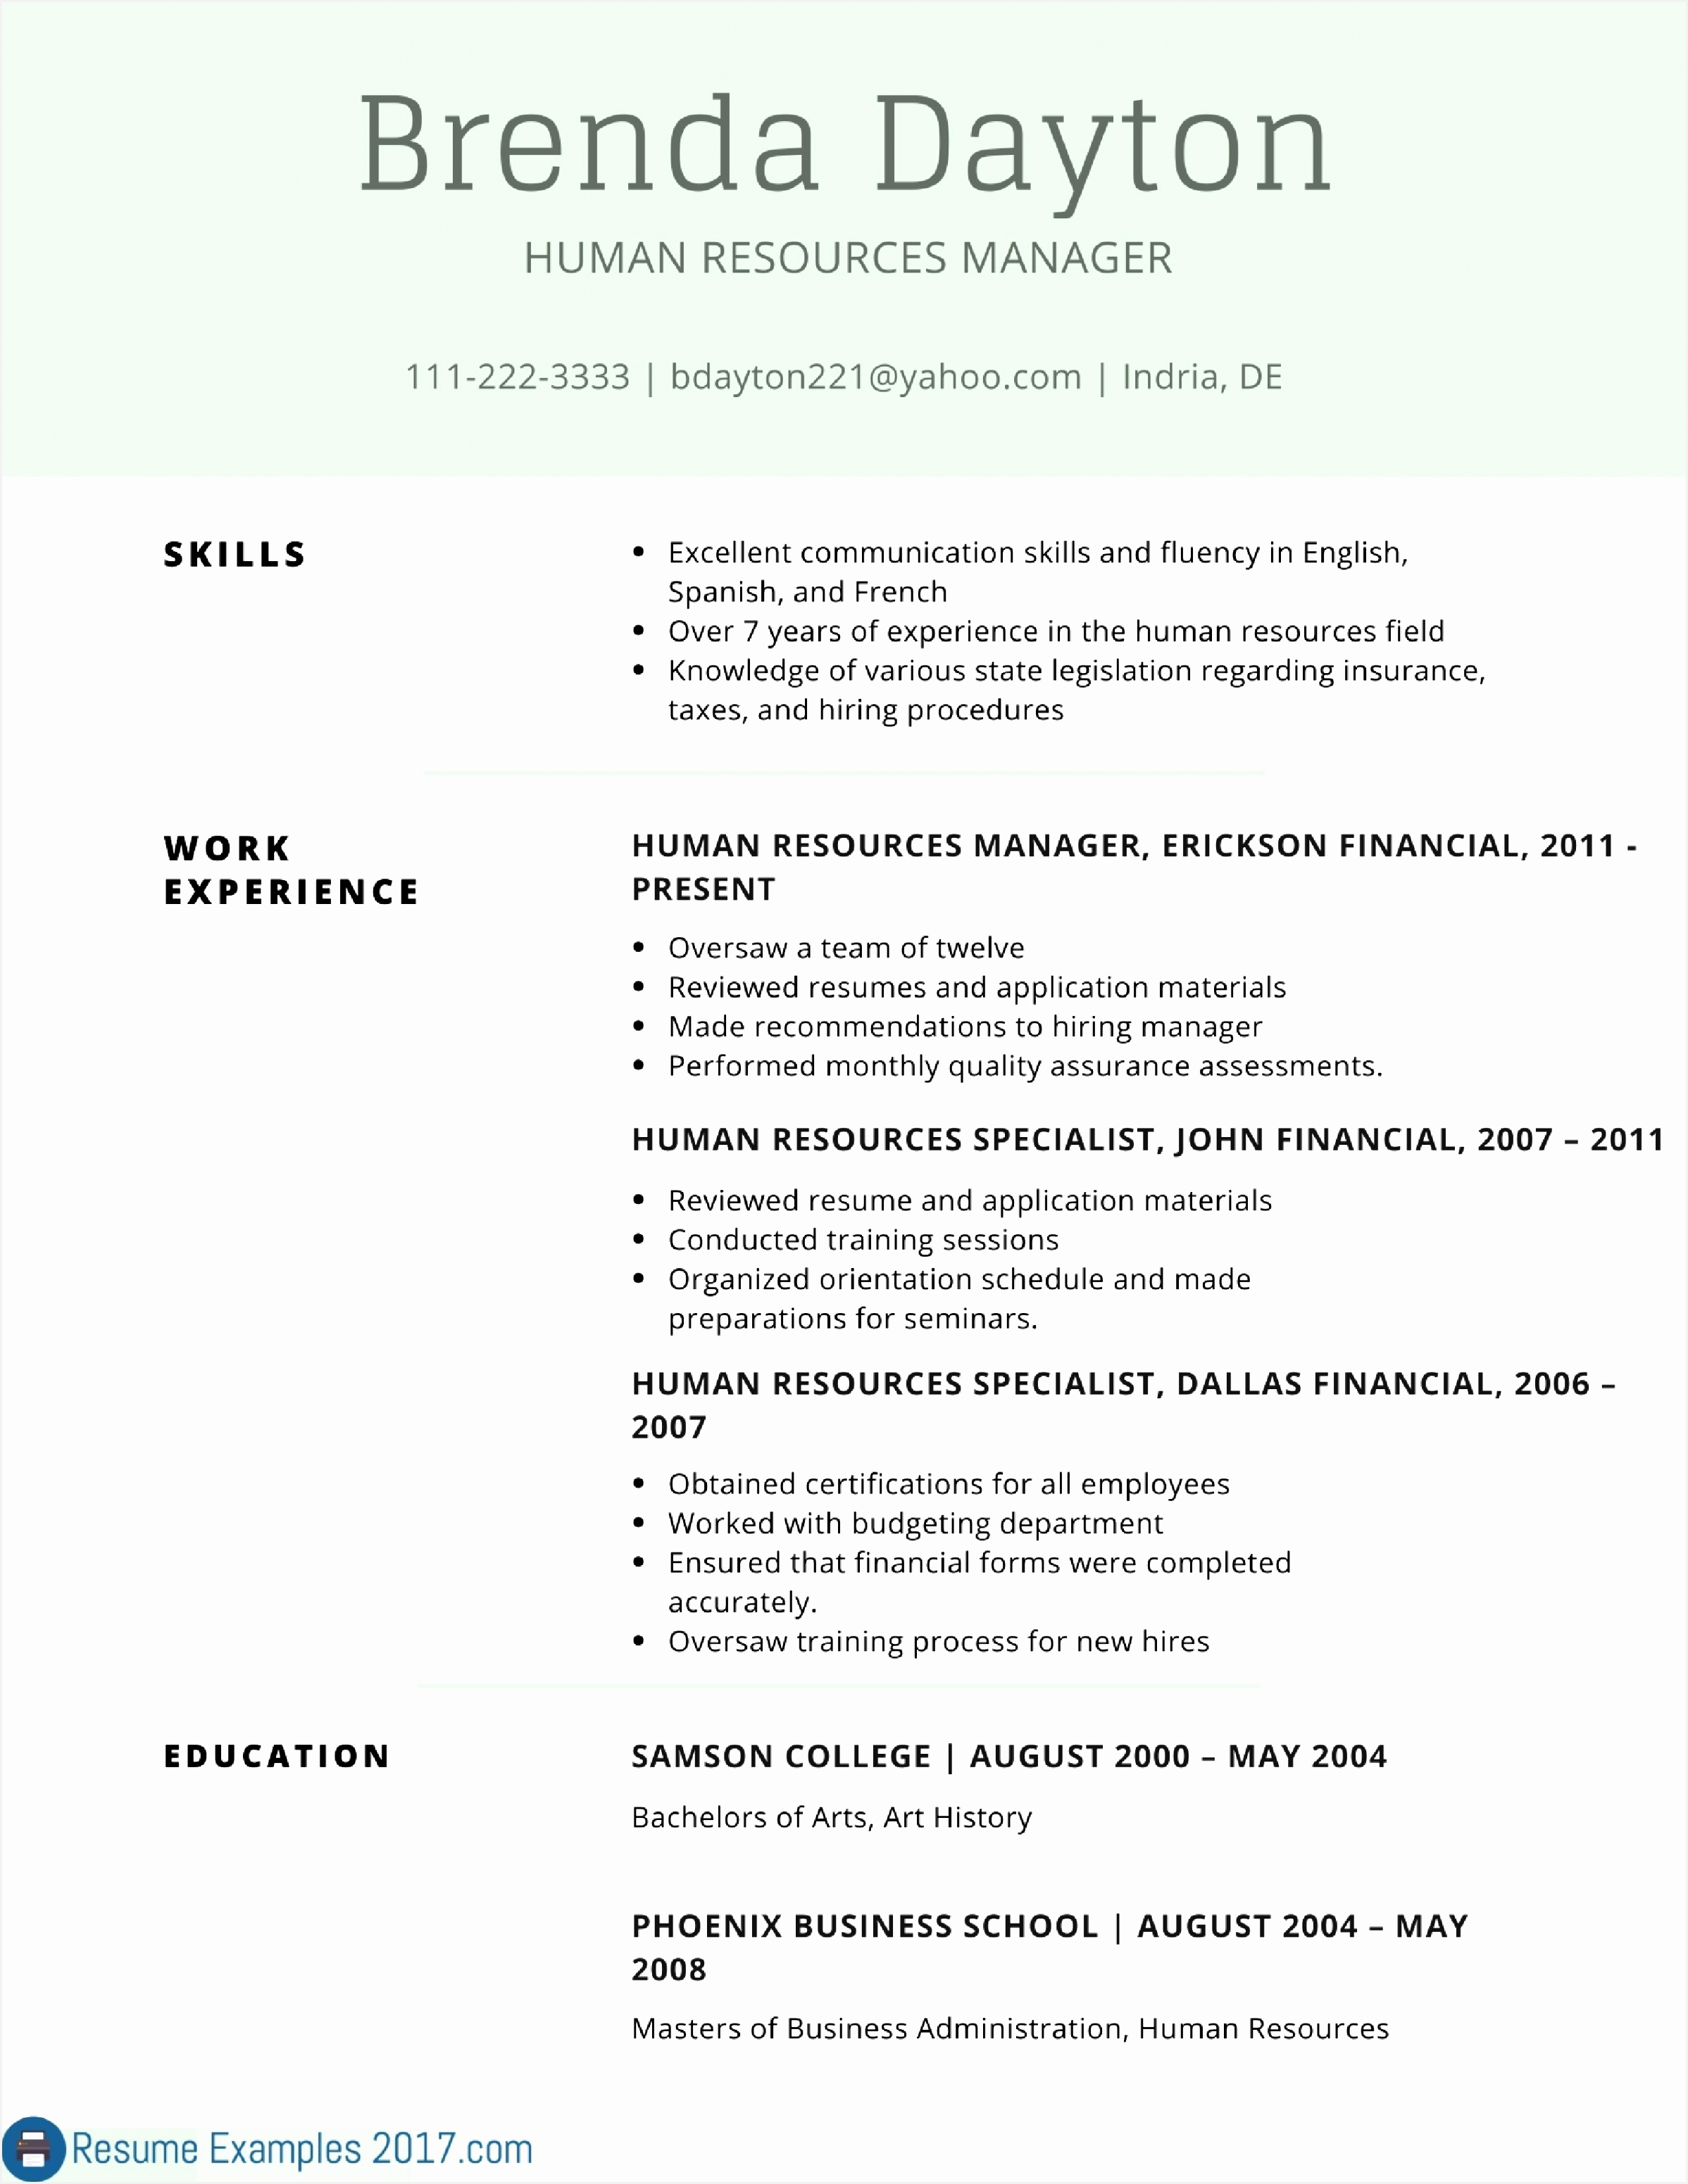 International social Worker Sample Resume Spdhk Inspirational Descriptive Words for Resume Unique 52 Inspirational Resume for31022397